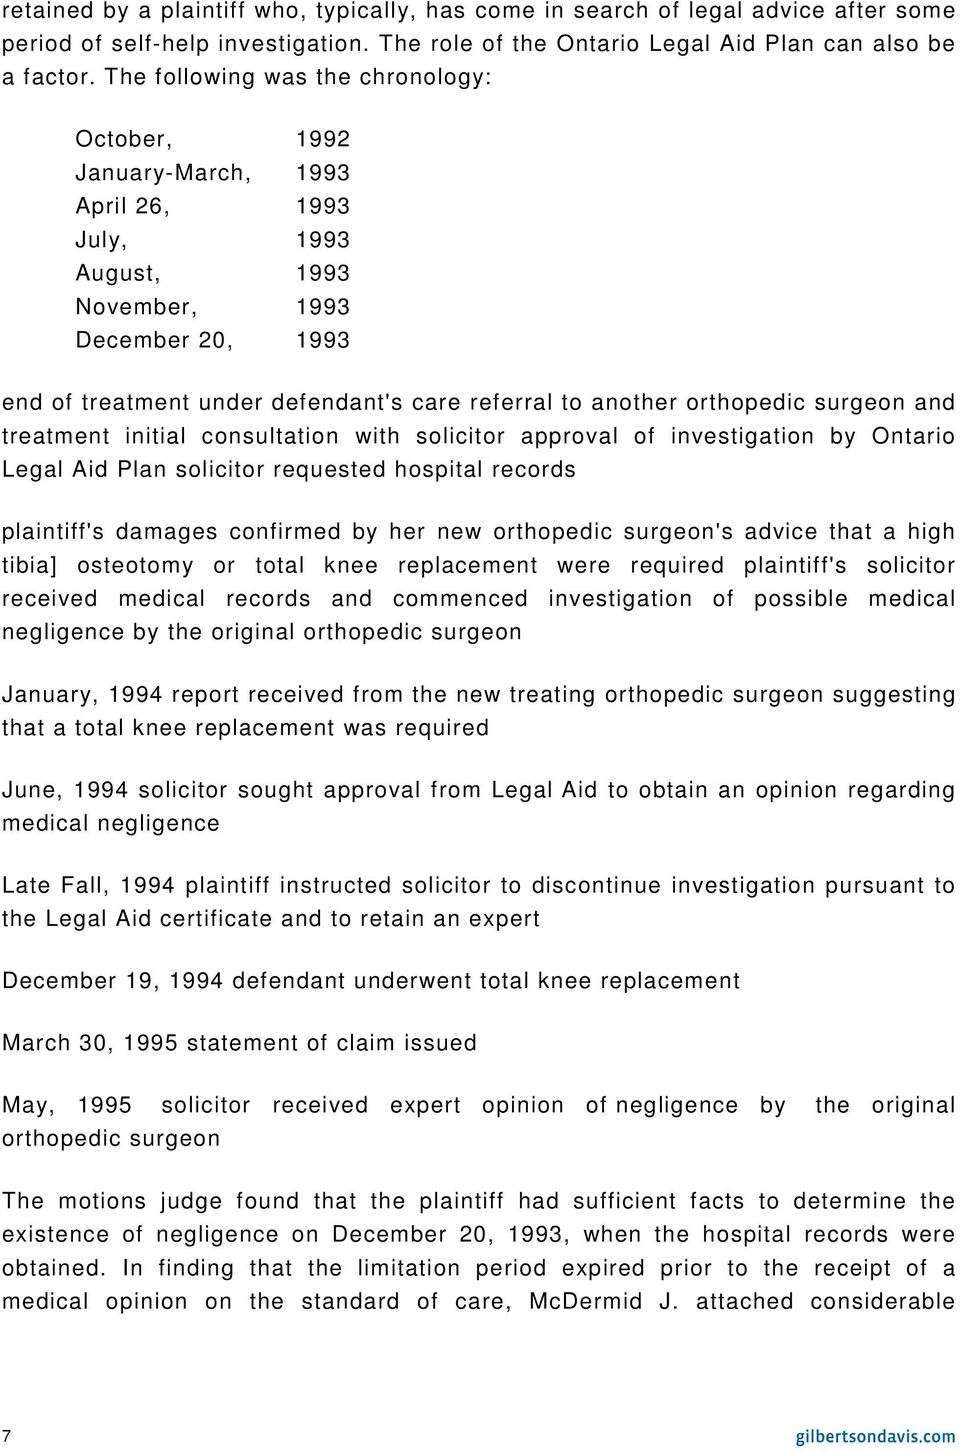 orthopedic surgeon and treatment initial consultation with solicitor approval of investigation by Ontario Legal Aid Plan solicitor requested hospital records plaintiff's damages confirmed by her new